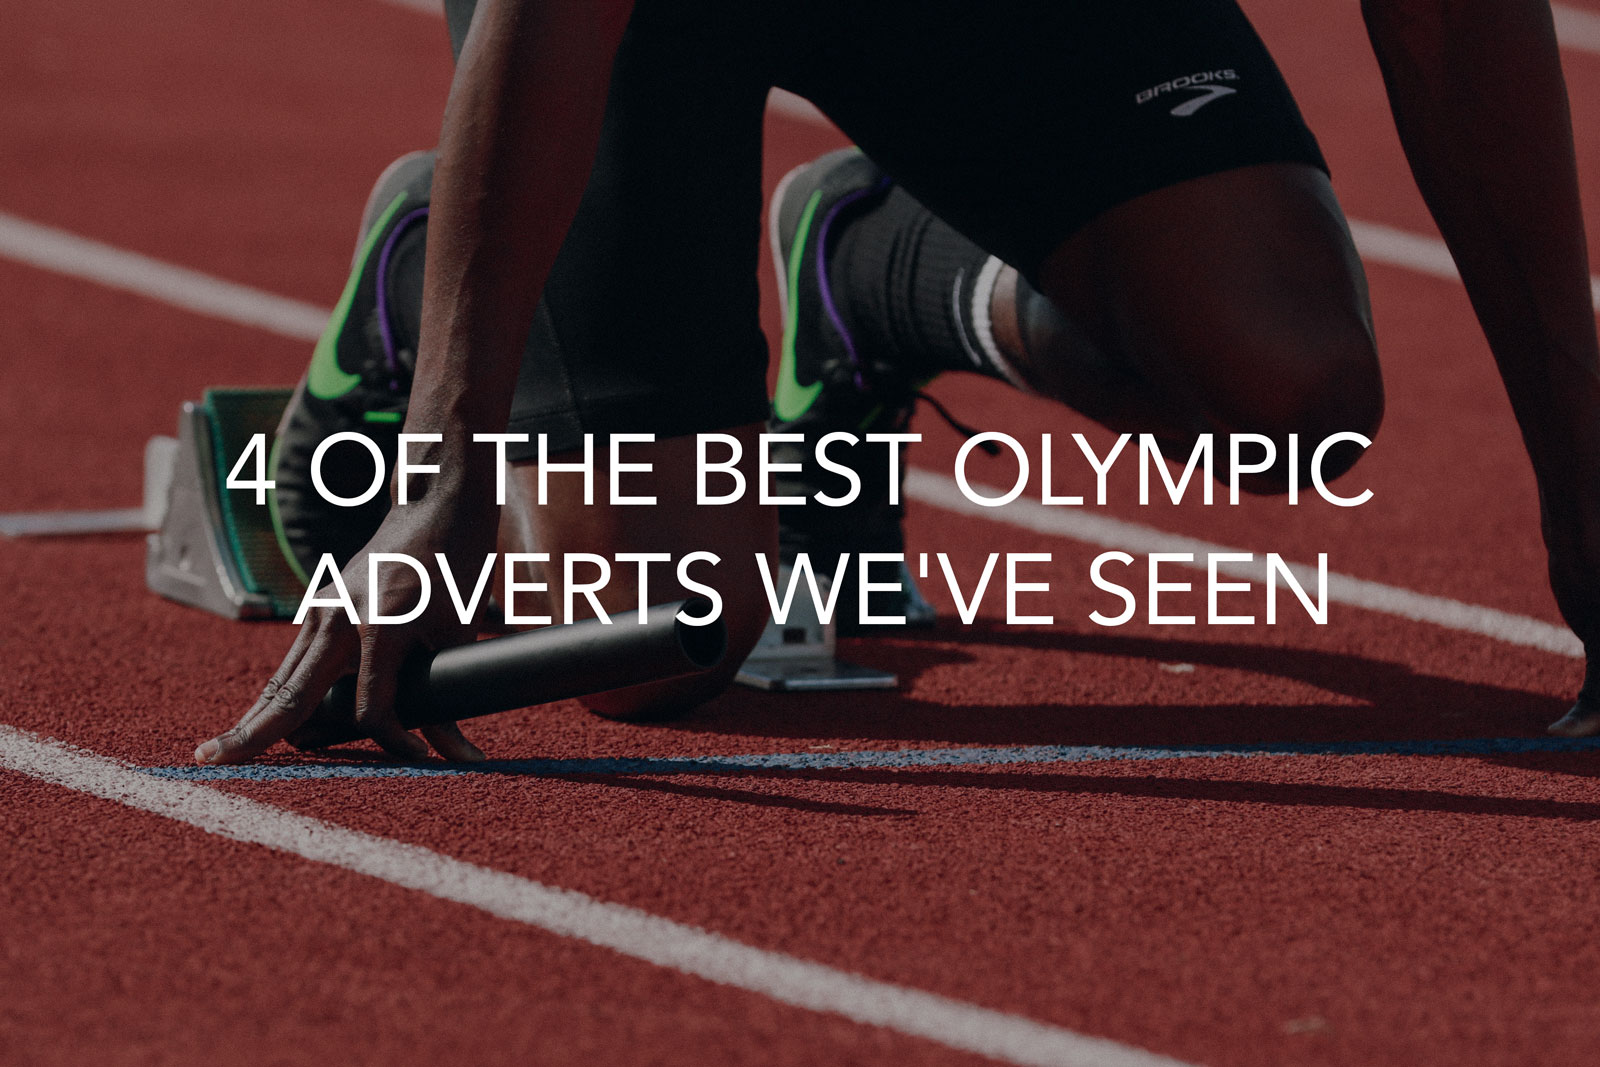 featured image for article showcasing 4 of the best olympic adverts we've seen